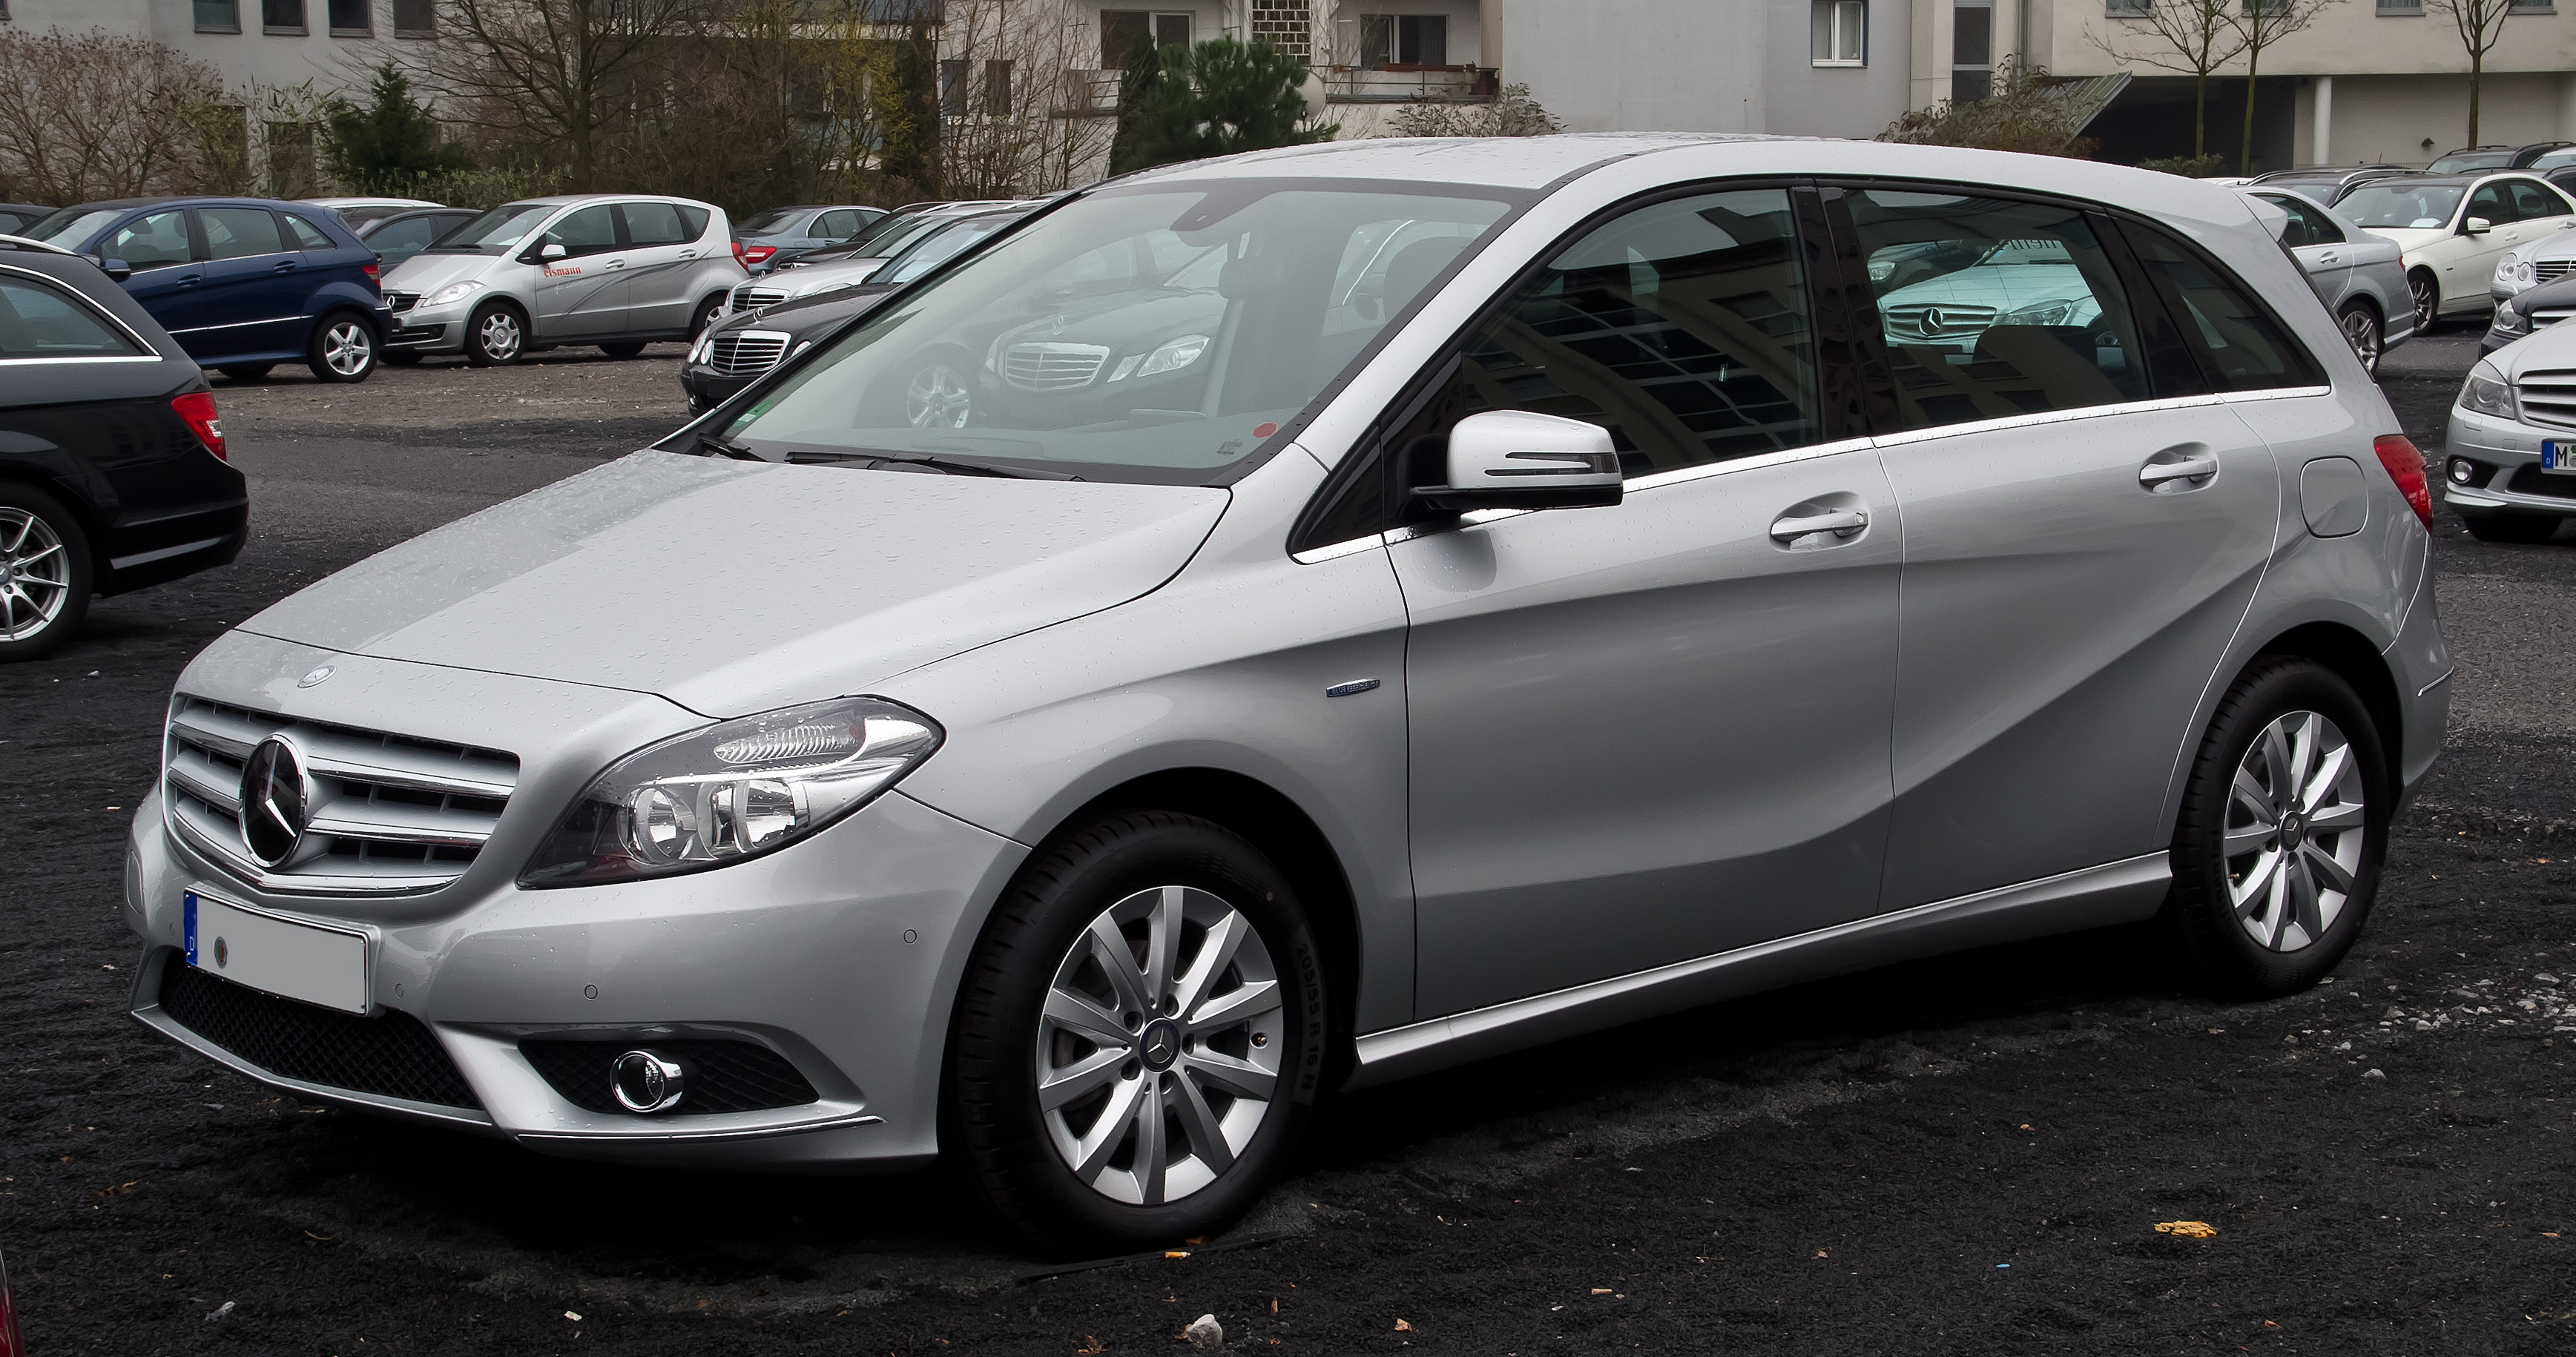 datei:mercedes-benz b 180 blueefficiency (w 246) – frontansicht, 10